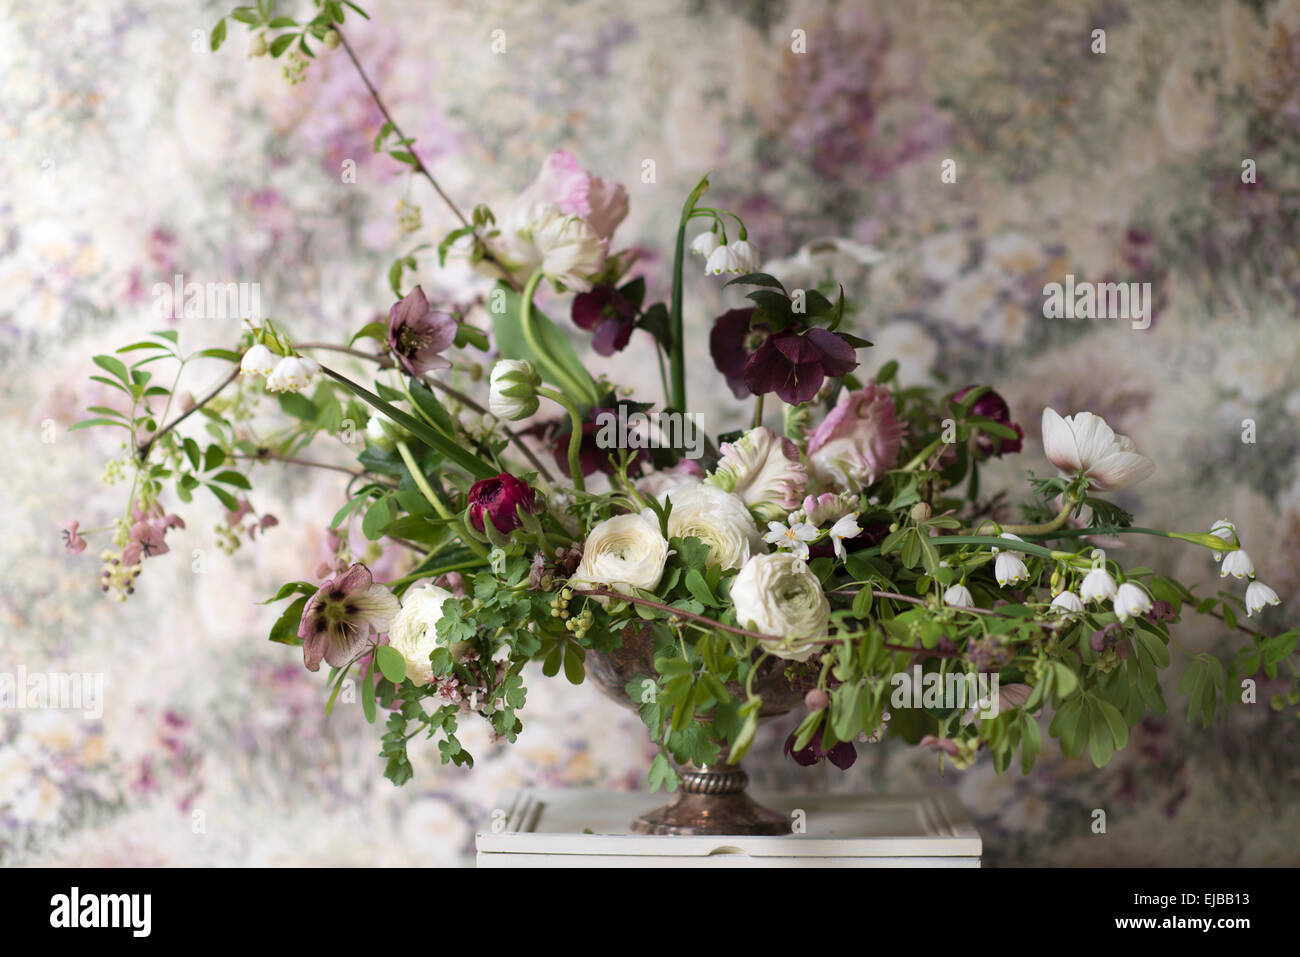 Spring bouquet of parrot tulips, ranunculus, anemones and Lucojum - Stock Image